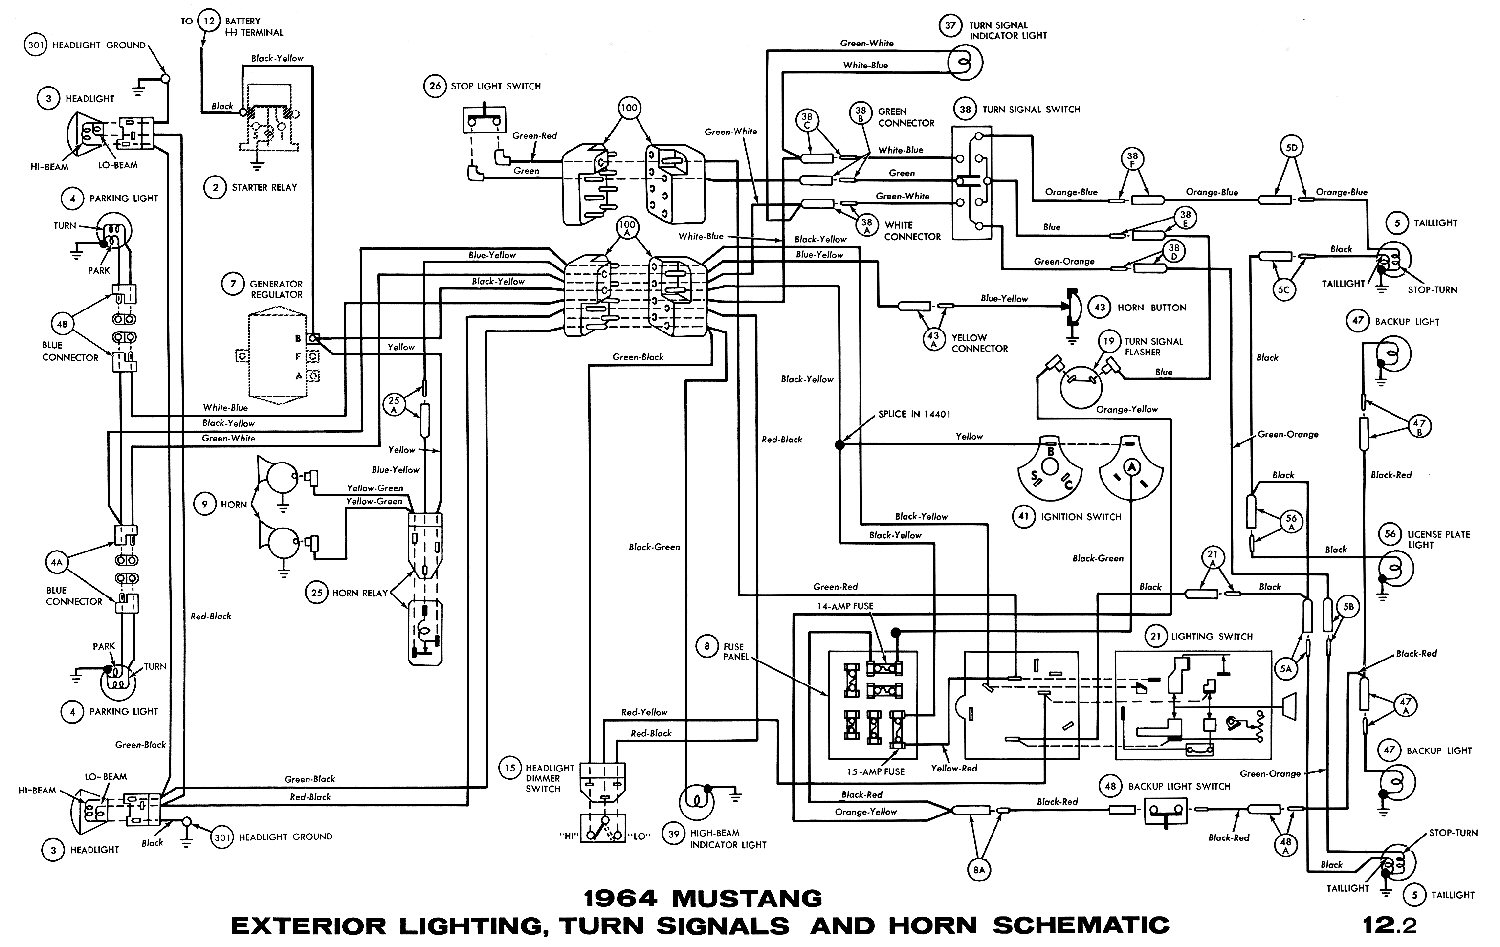 1964i 1965 ford mustang wiring diagram 1999 mustang gt wiring diagram 1965 ford mustang wiring diagrams at crackthecode.co